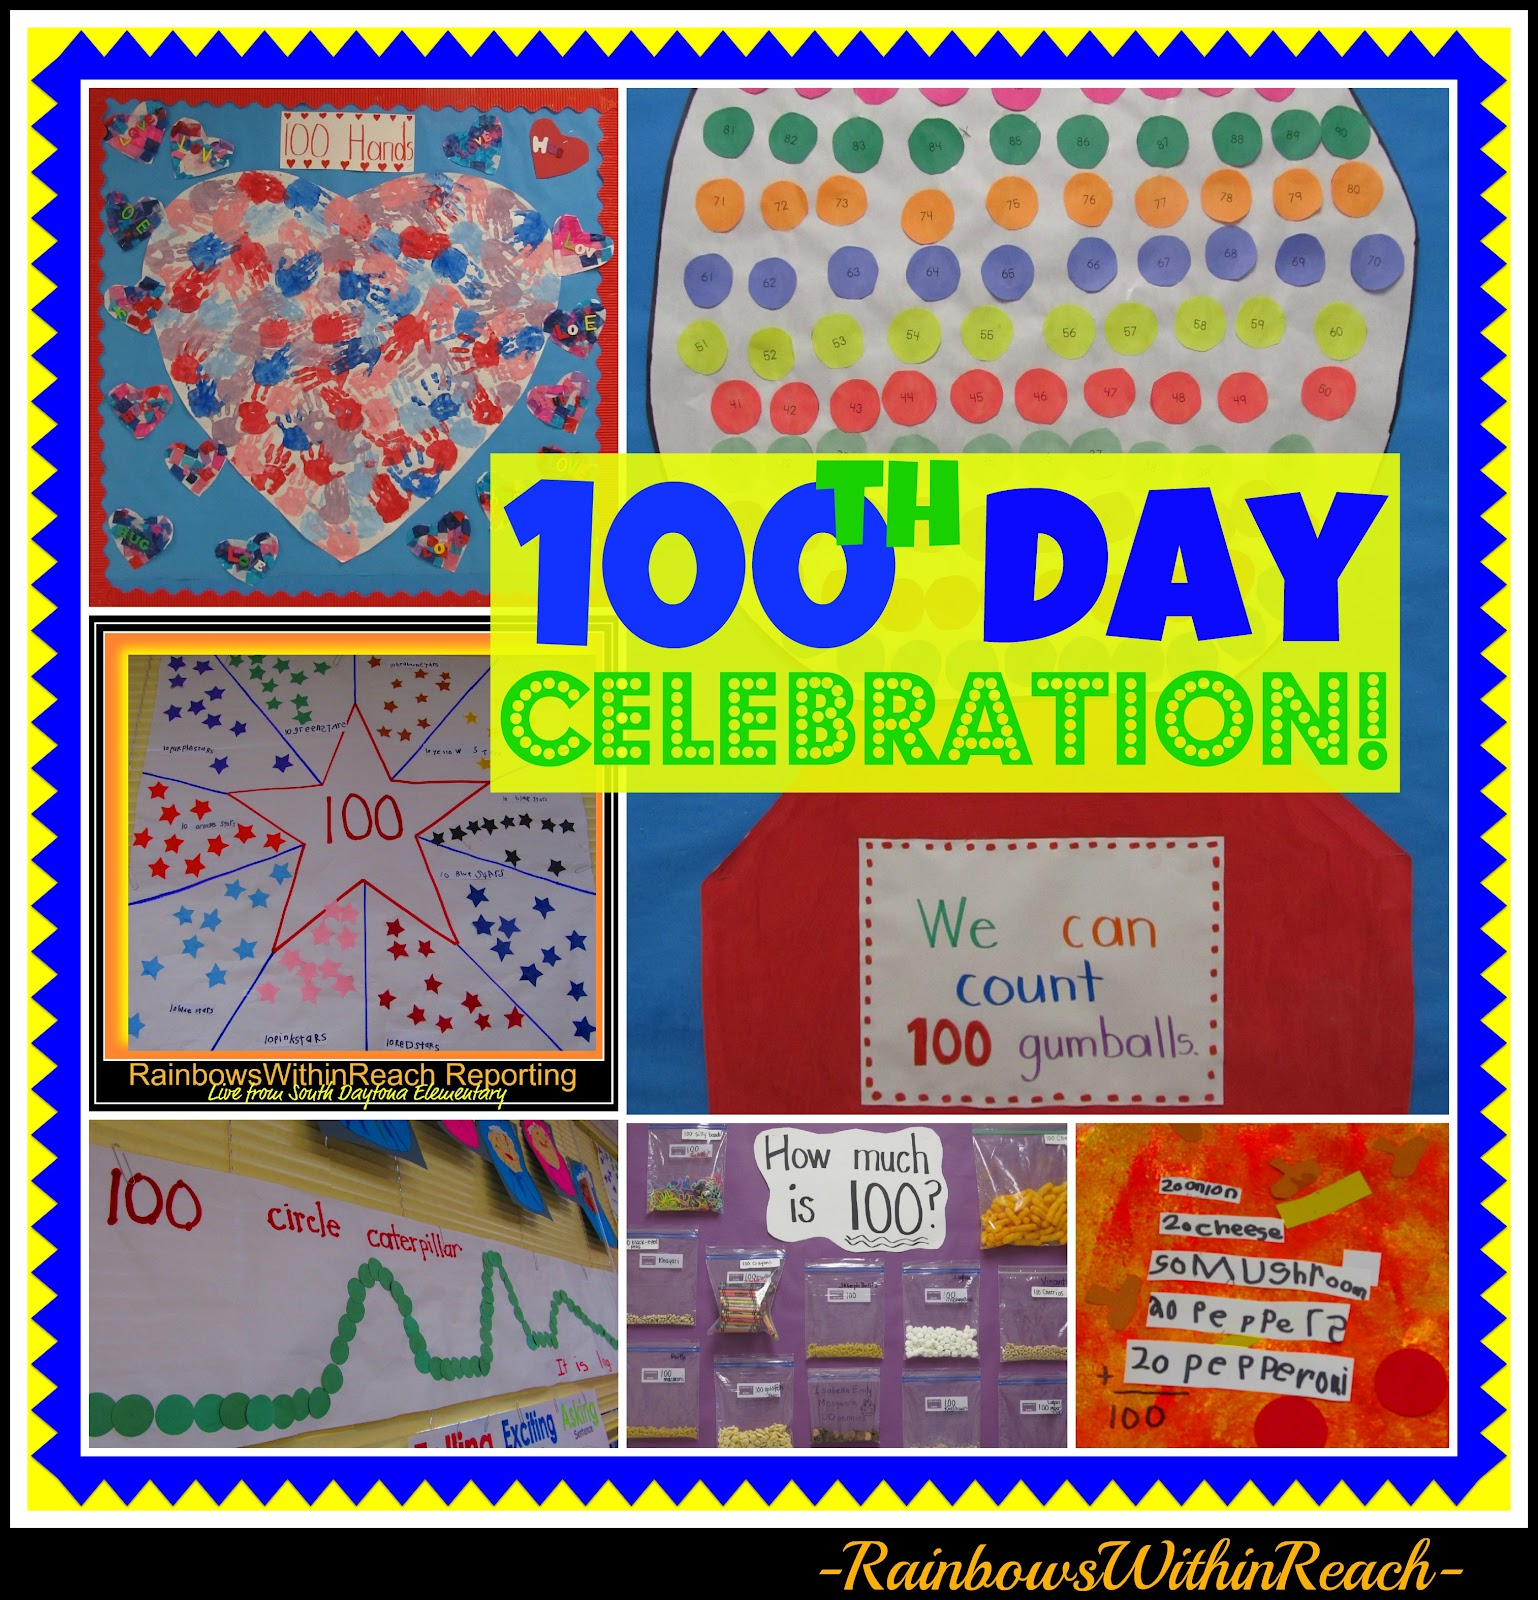 100th Day EXTRAVAGANZA!!!